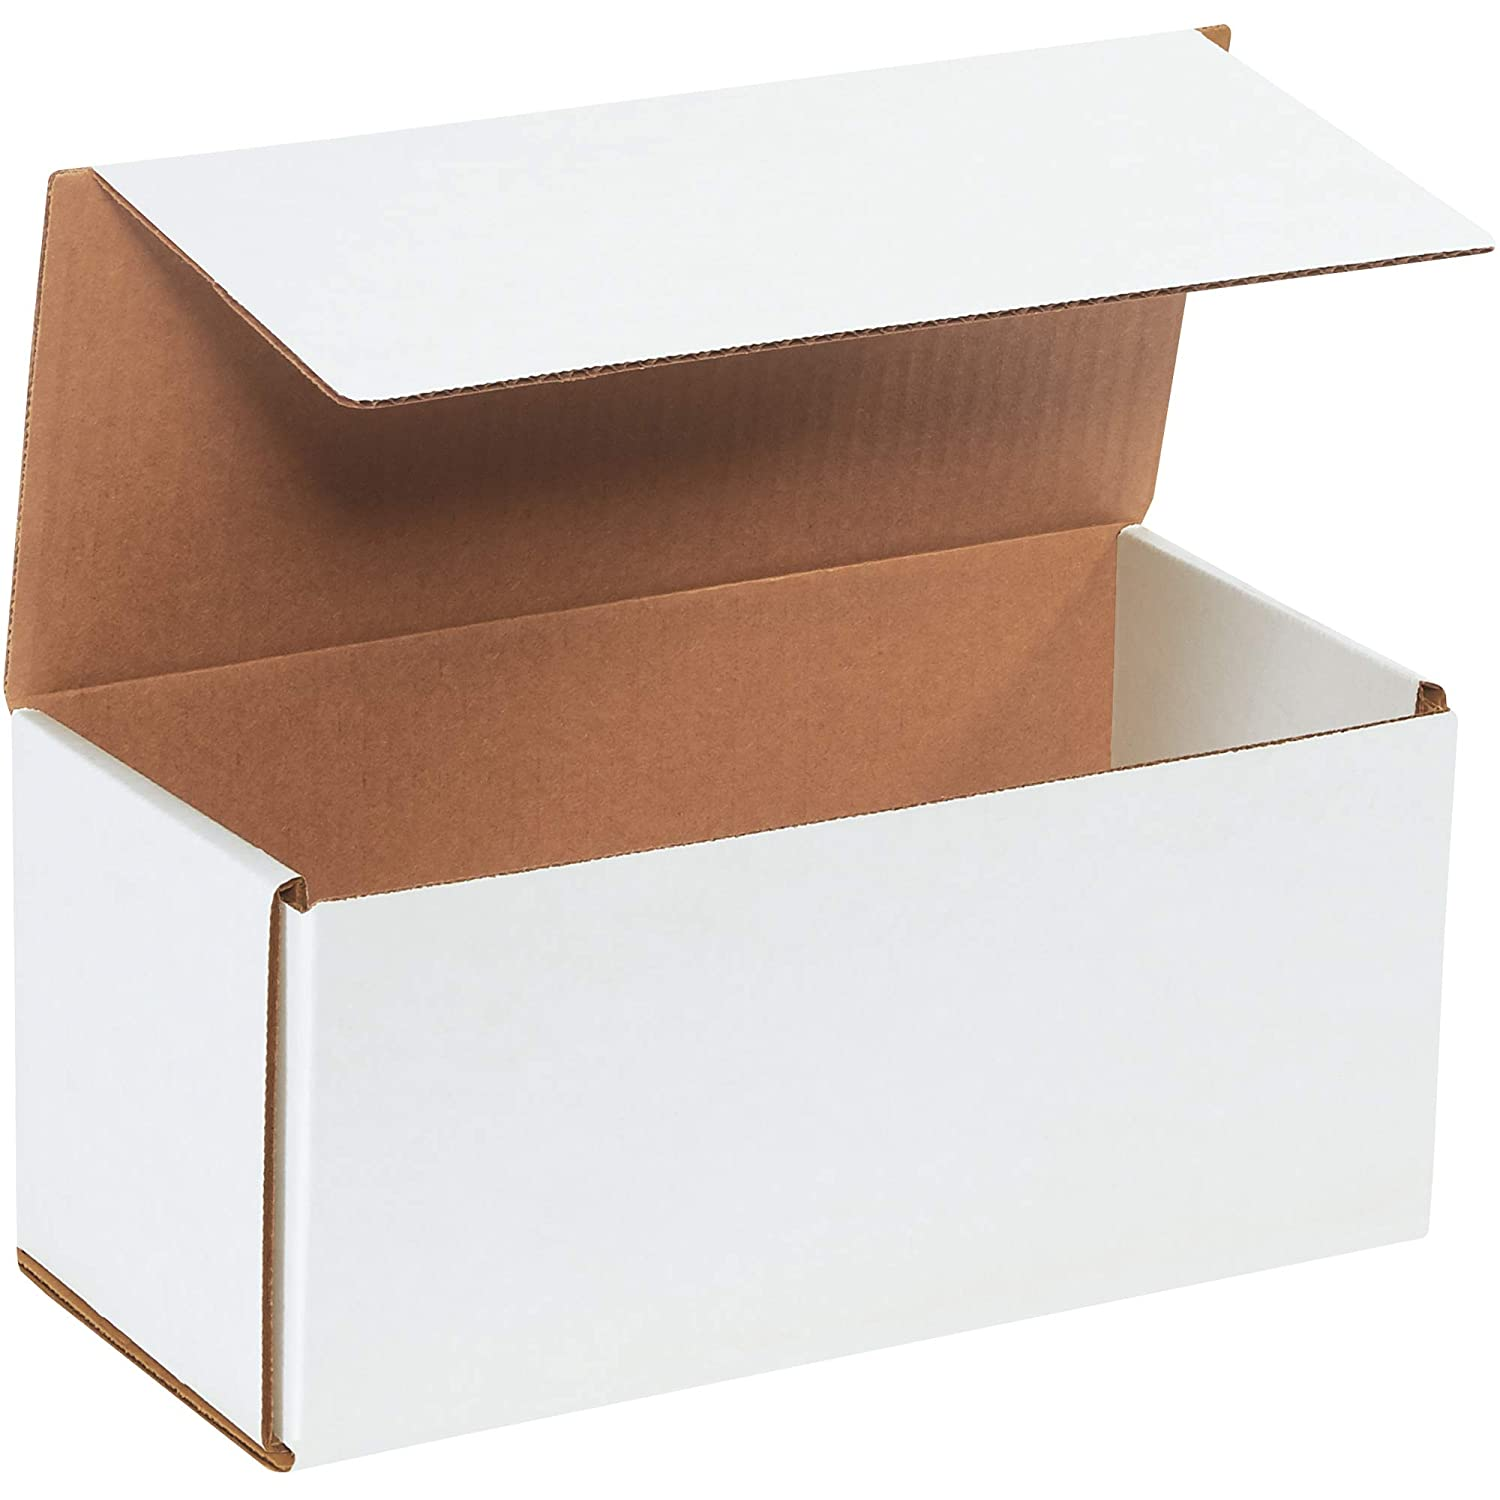 "BOX USA BM1155 Corrugated Mailers, 11"" x 5"" x 5"", White (Pack of 50): Industrial & Scientific"